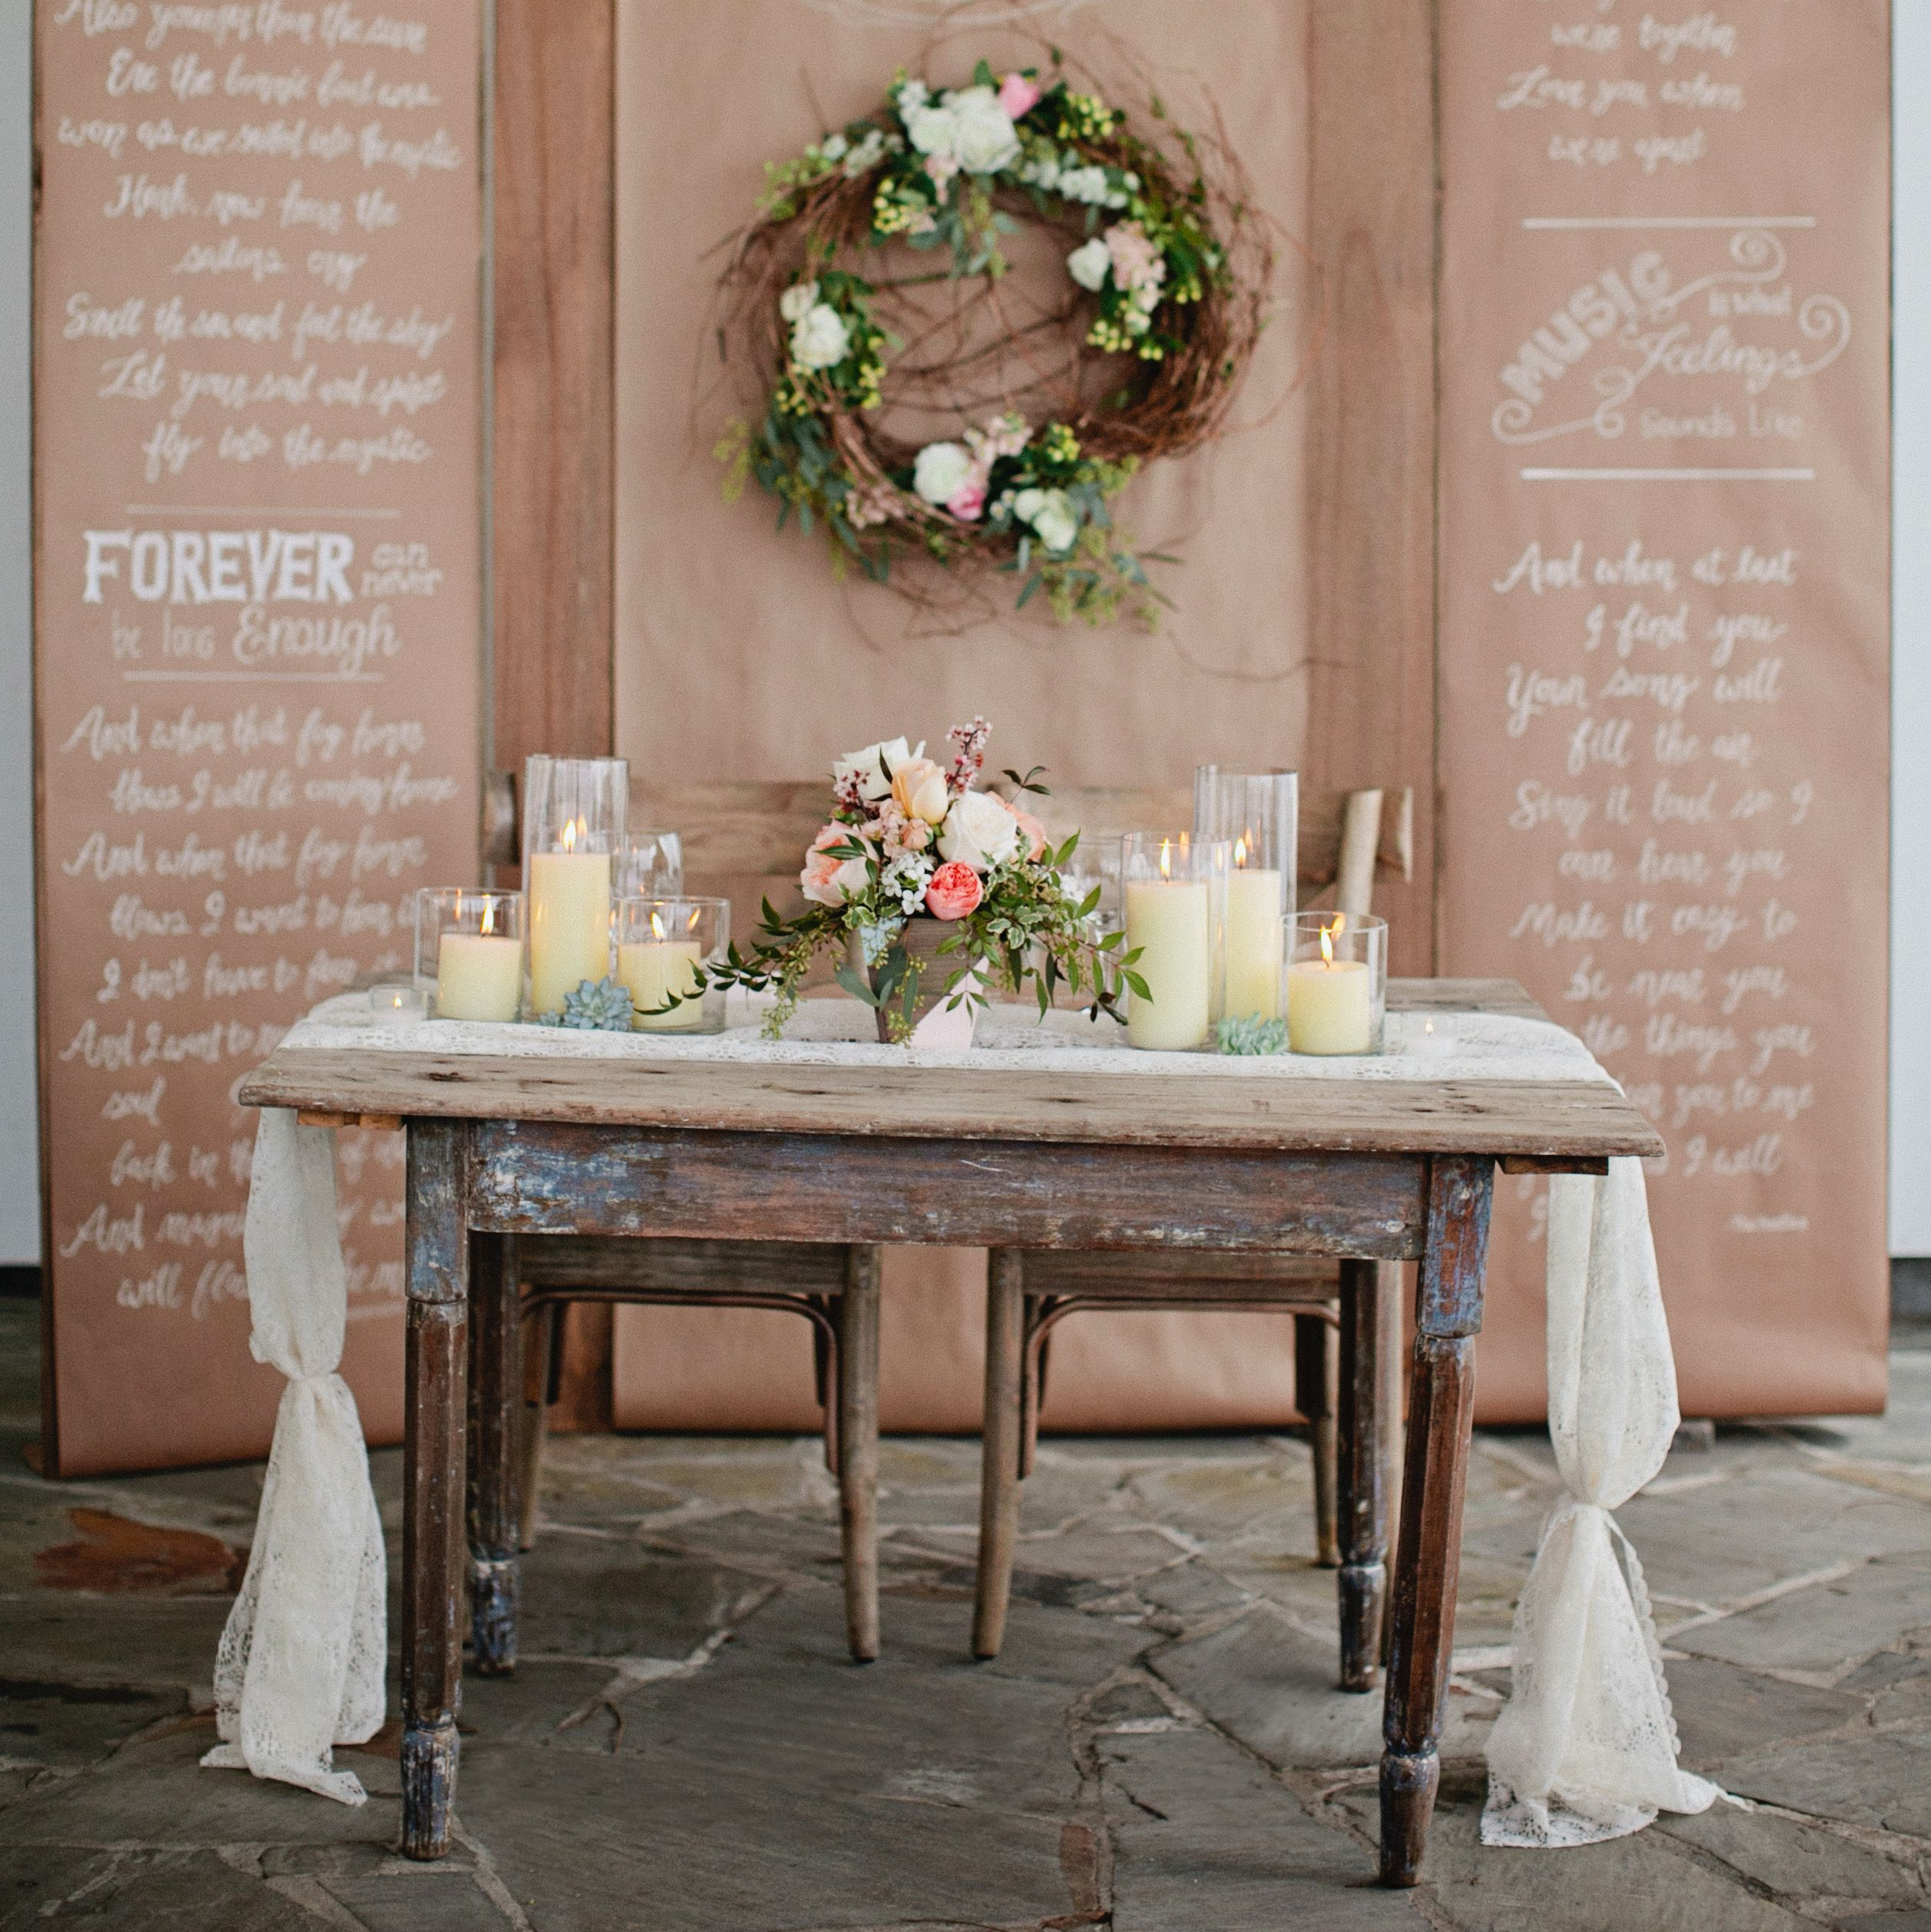 25 Stunning Rustic Wedding Ideas - Decorations for a Rustic ...